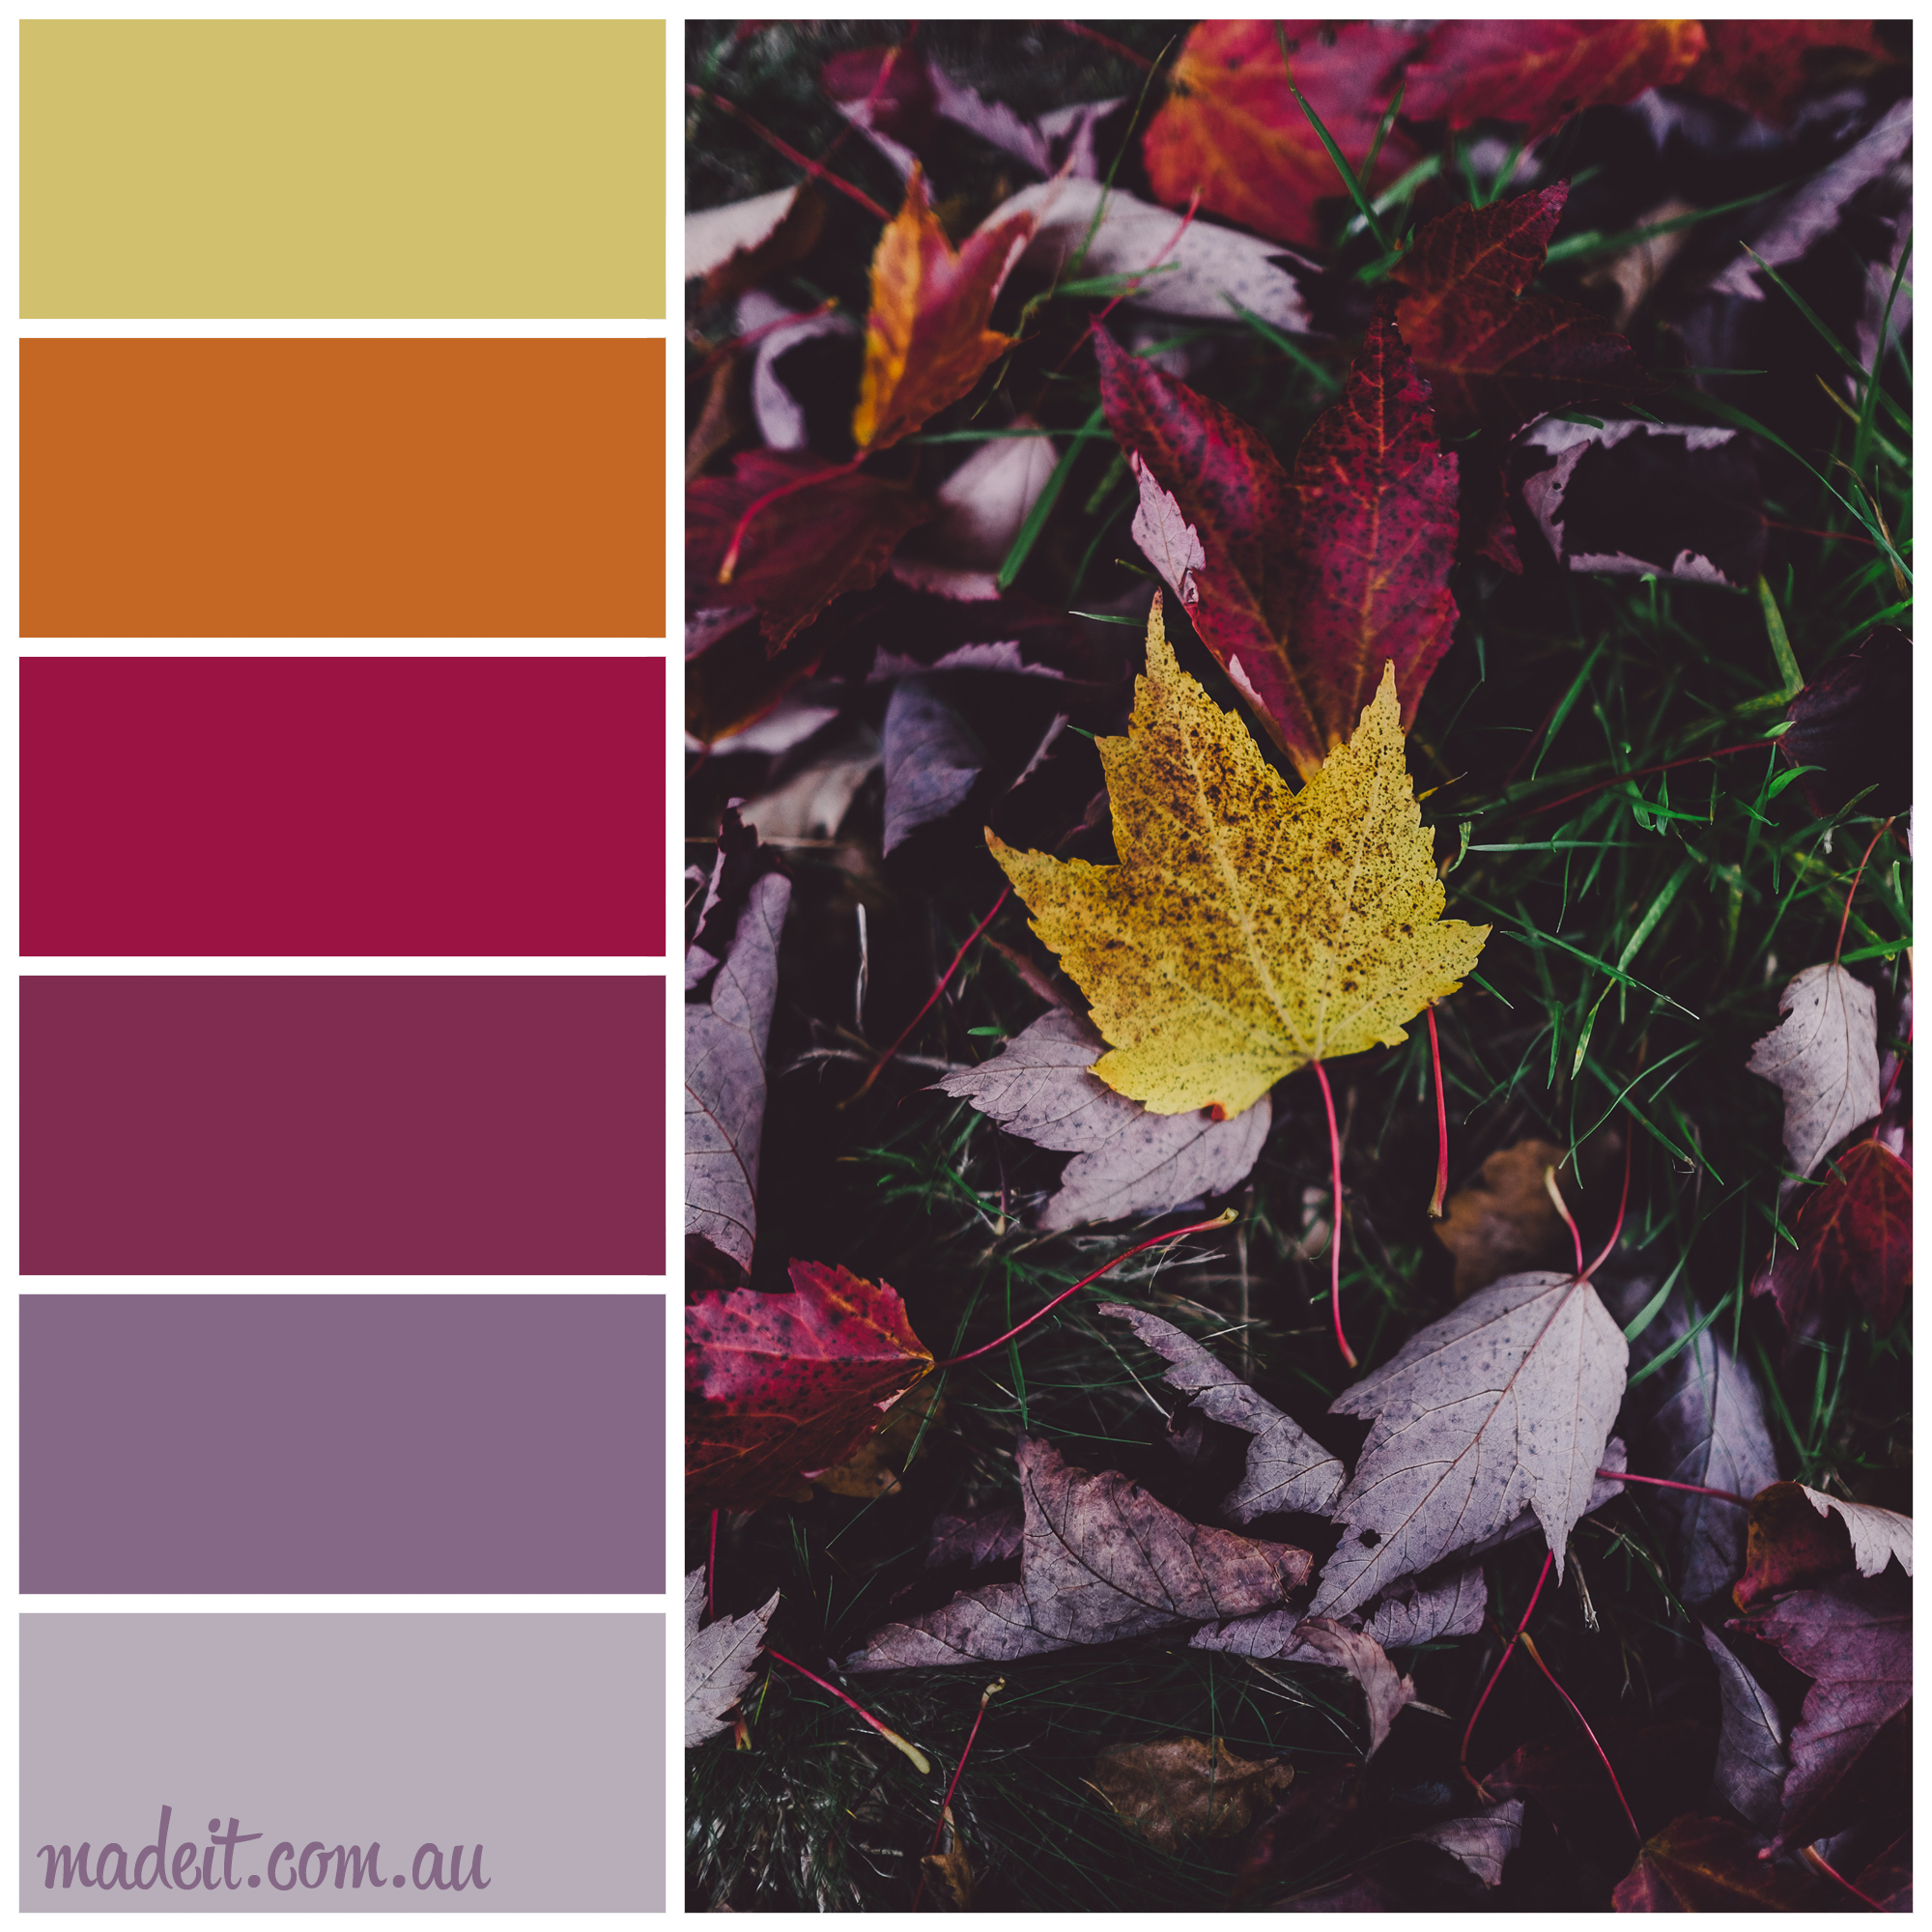 Colour Inspiration: Rich shades of fallen autumn leaves